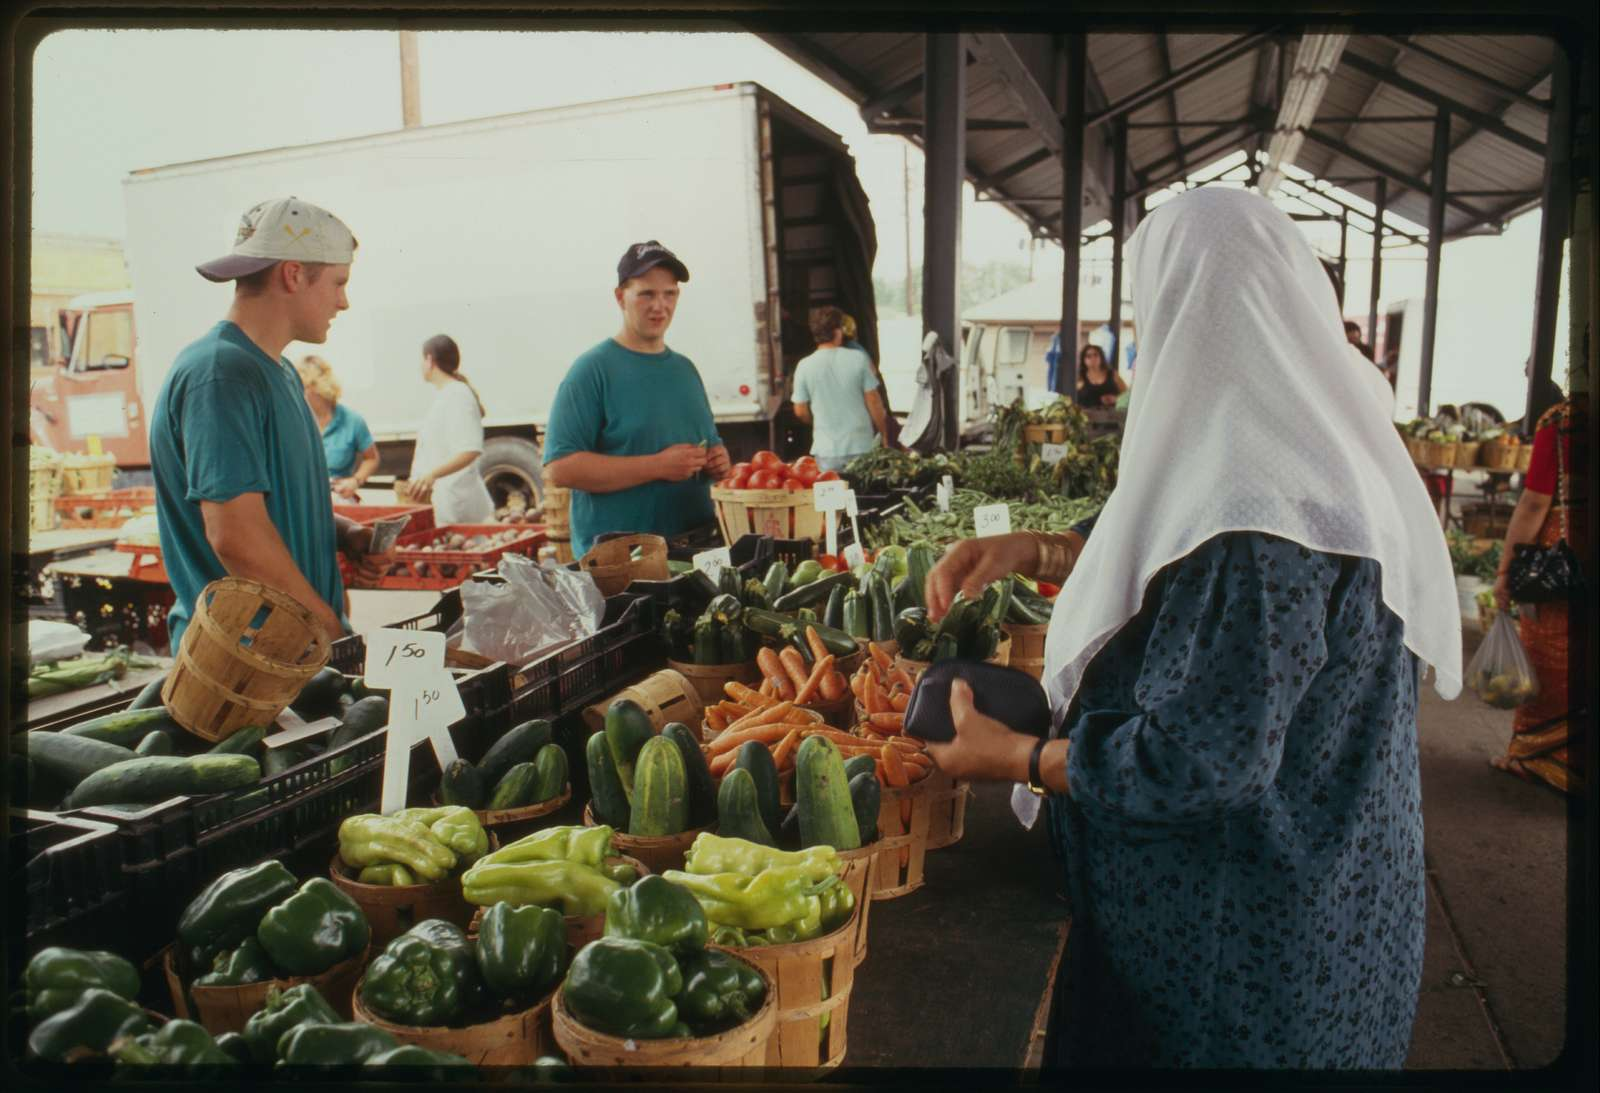 Woman (probably Arabic) wearing head scarf buys produce from a stand.